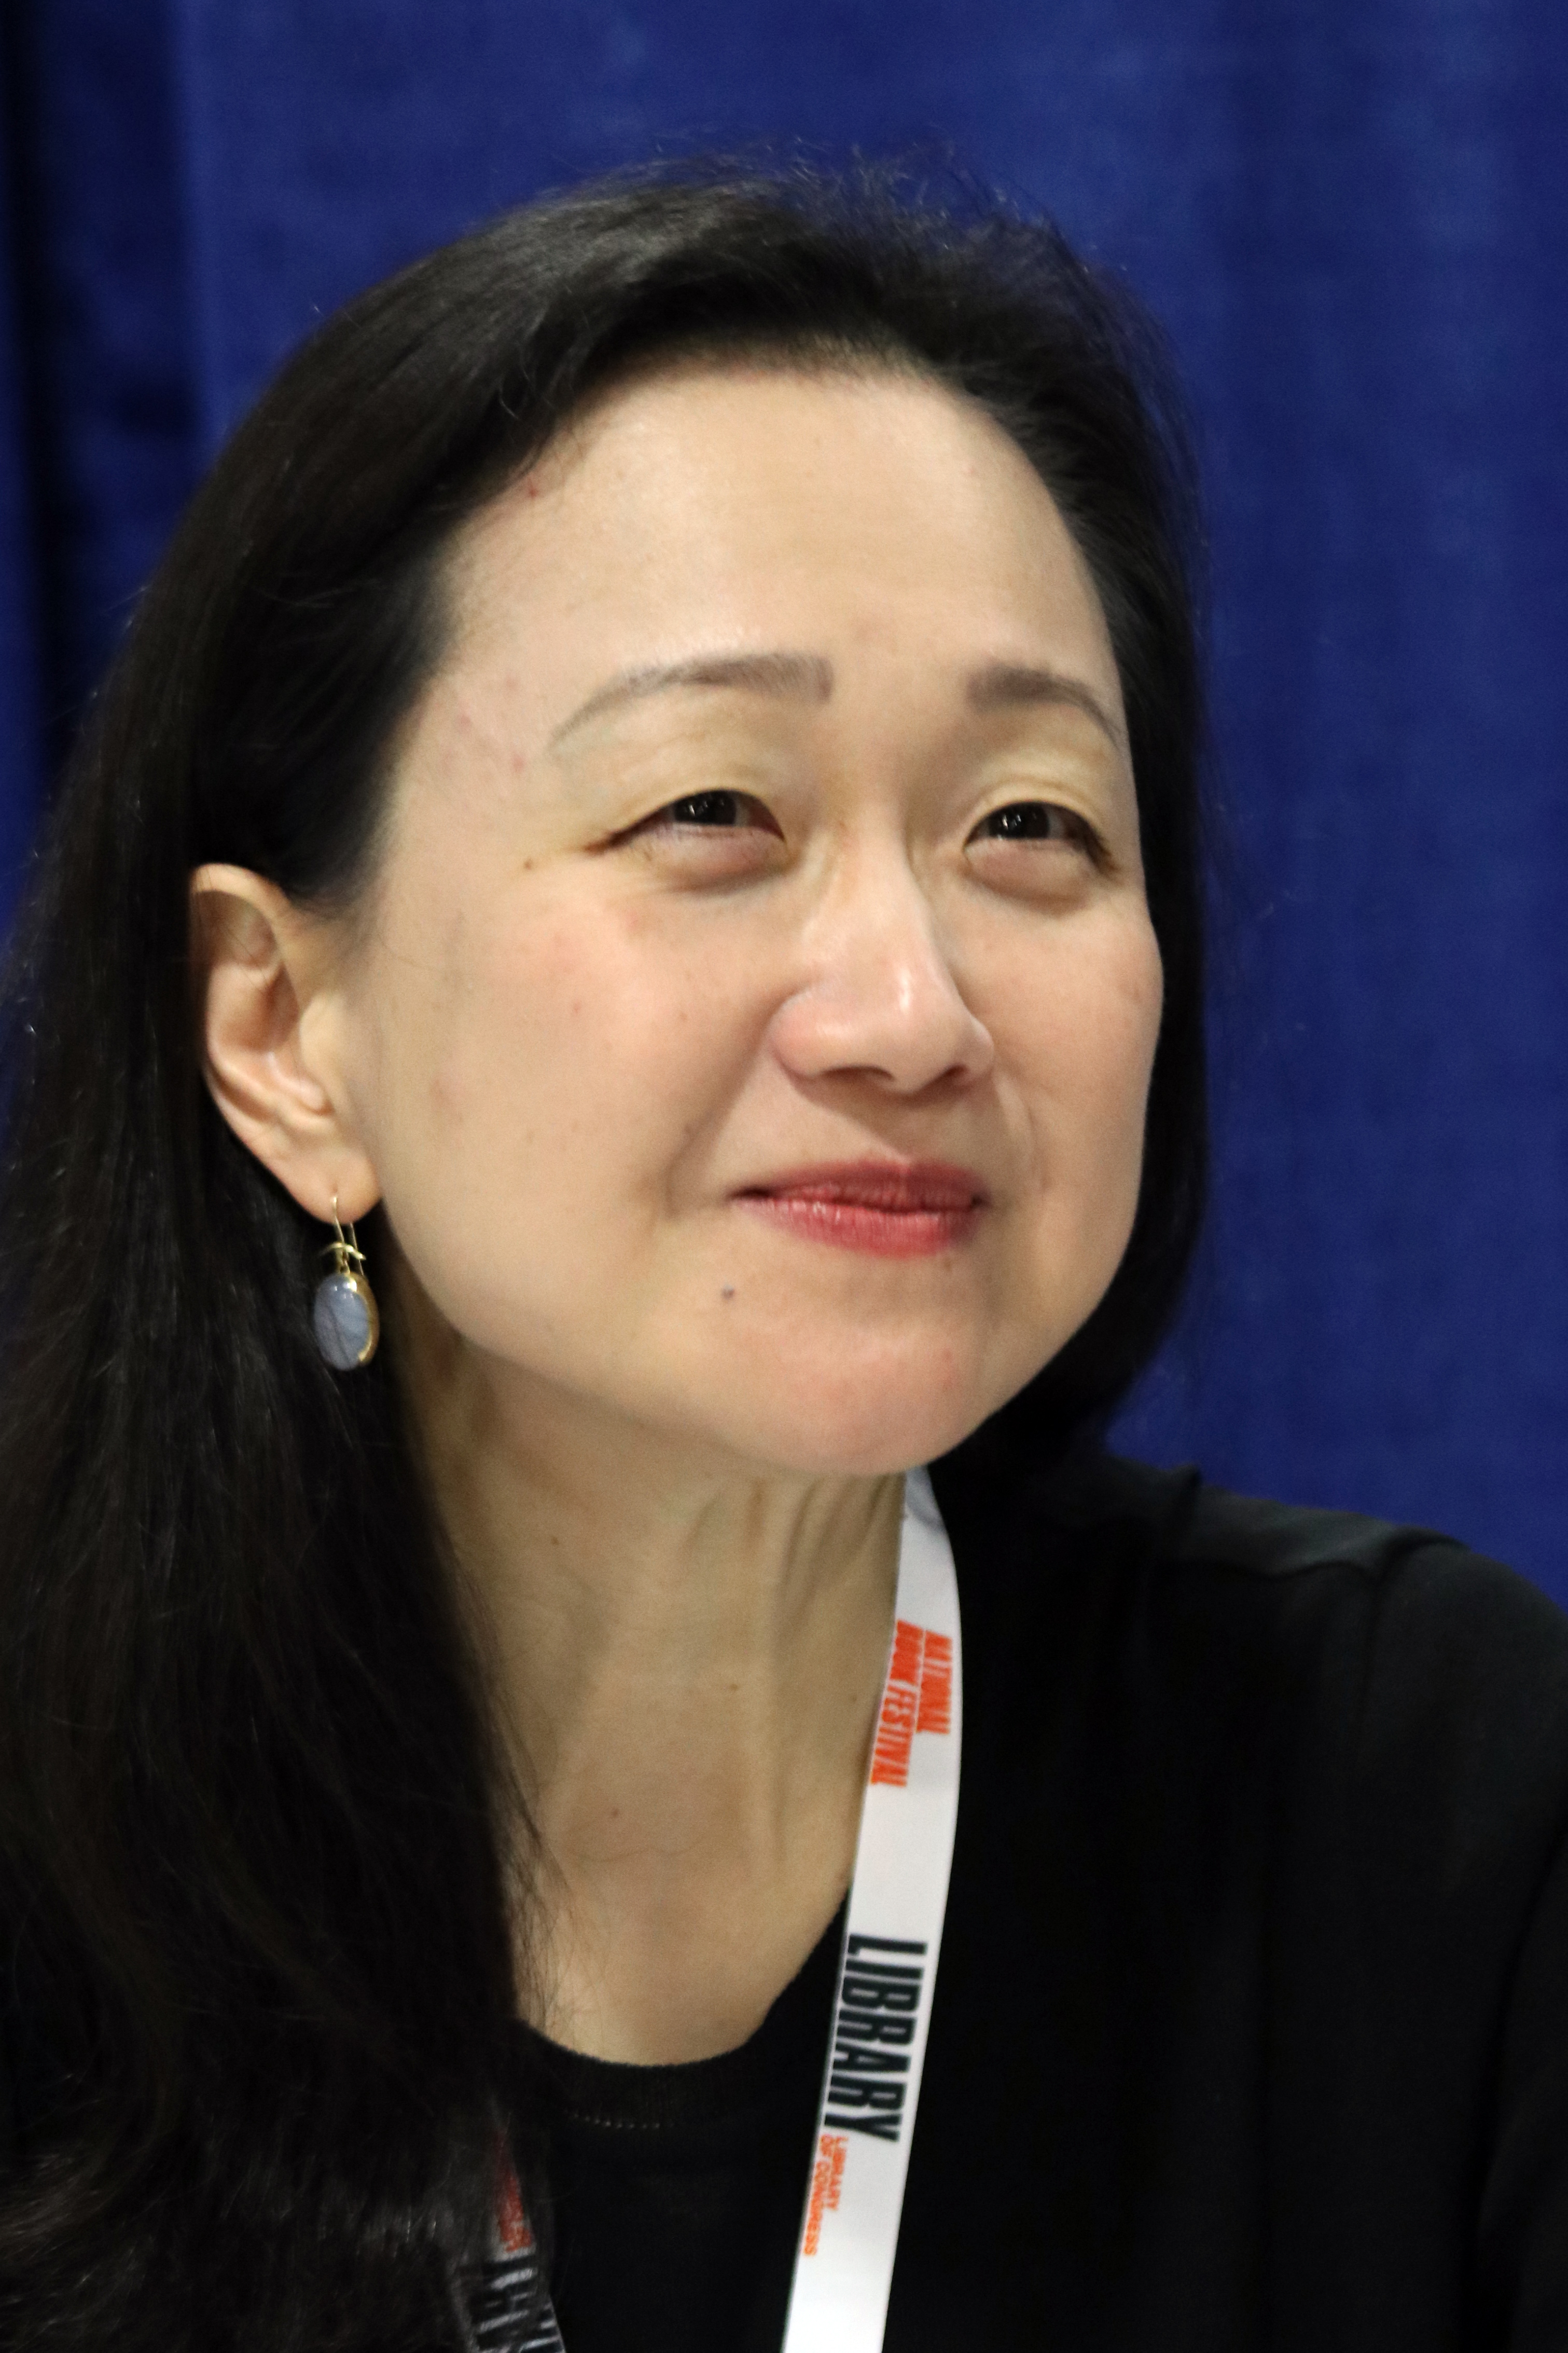 Lee at the 2018 U.S. [[National Book Festival]]